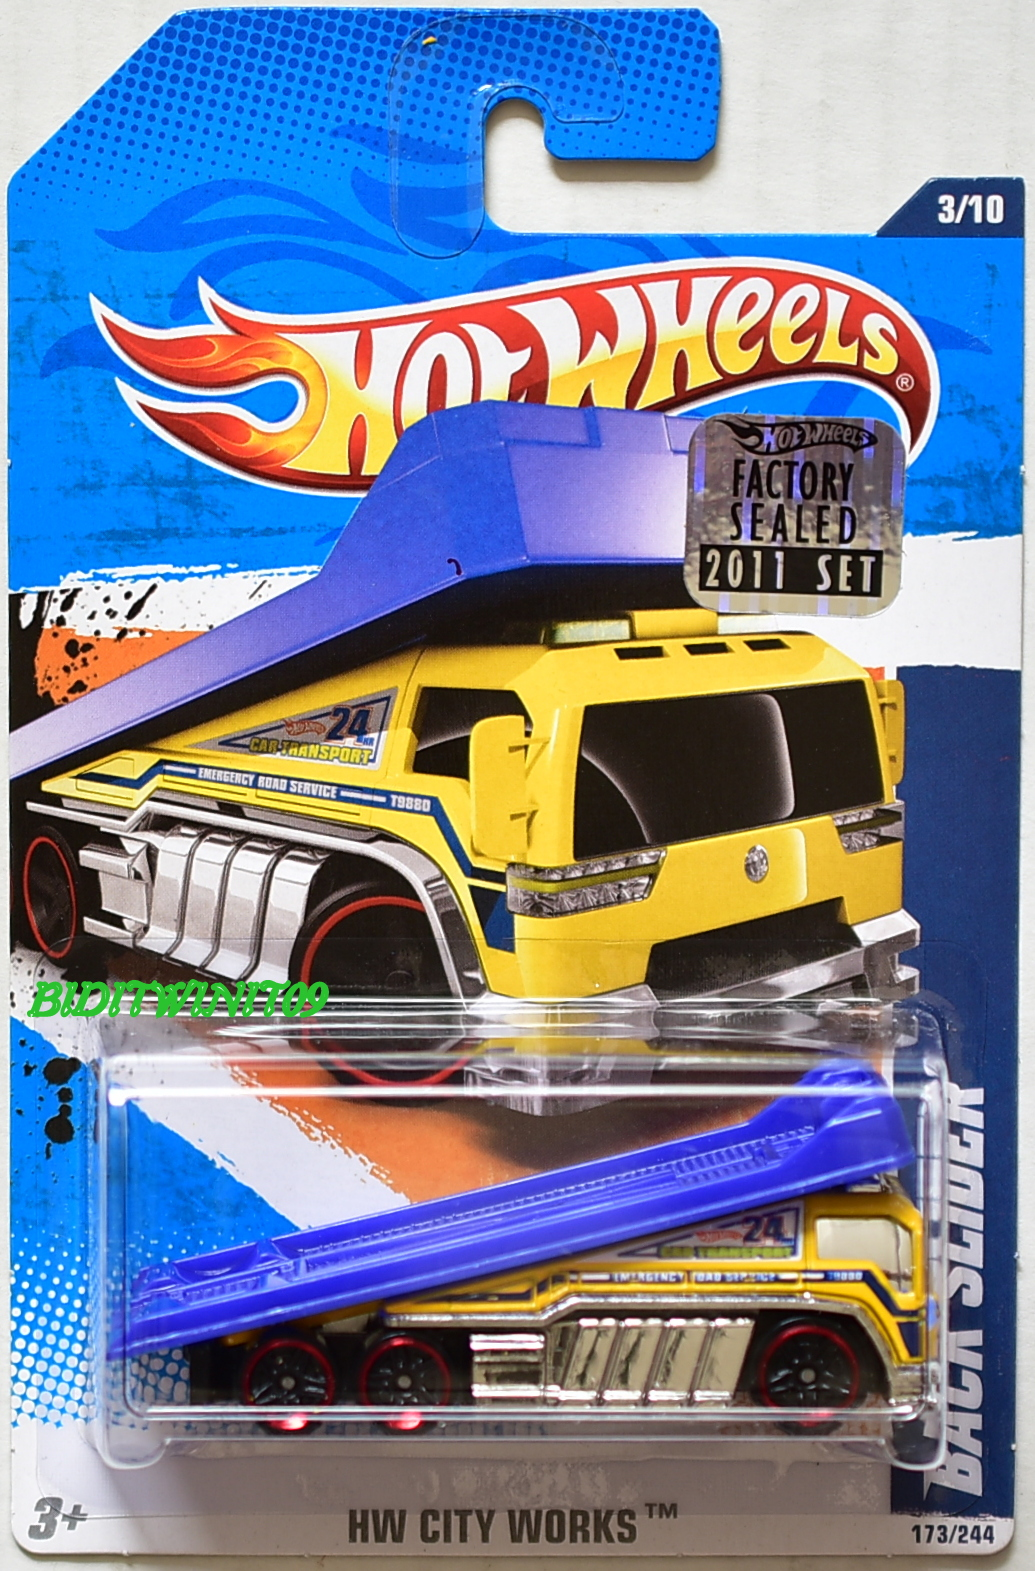 HOT WHEELS 2011 HW CITY WORKS BACK SLIDER #3/10 YELLOW FACTORY SEALED E+